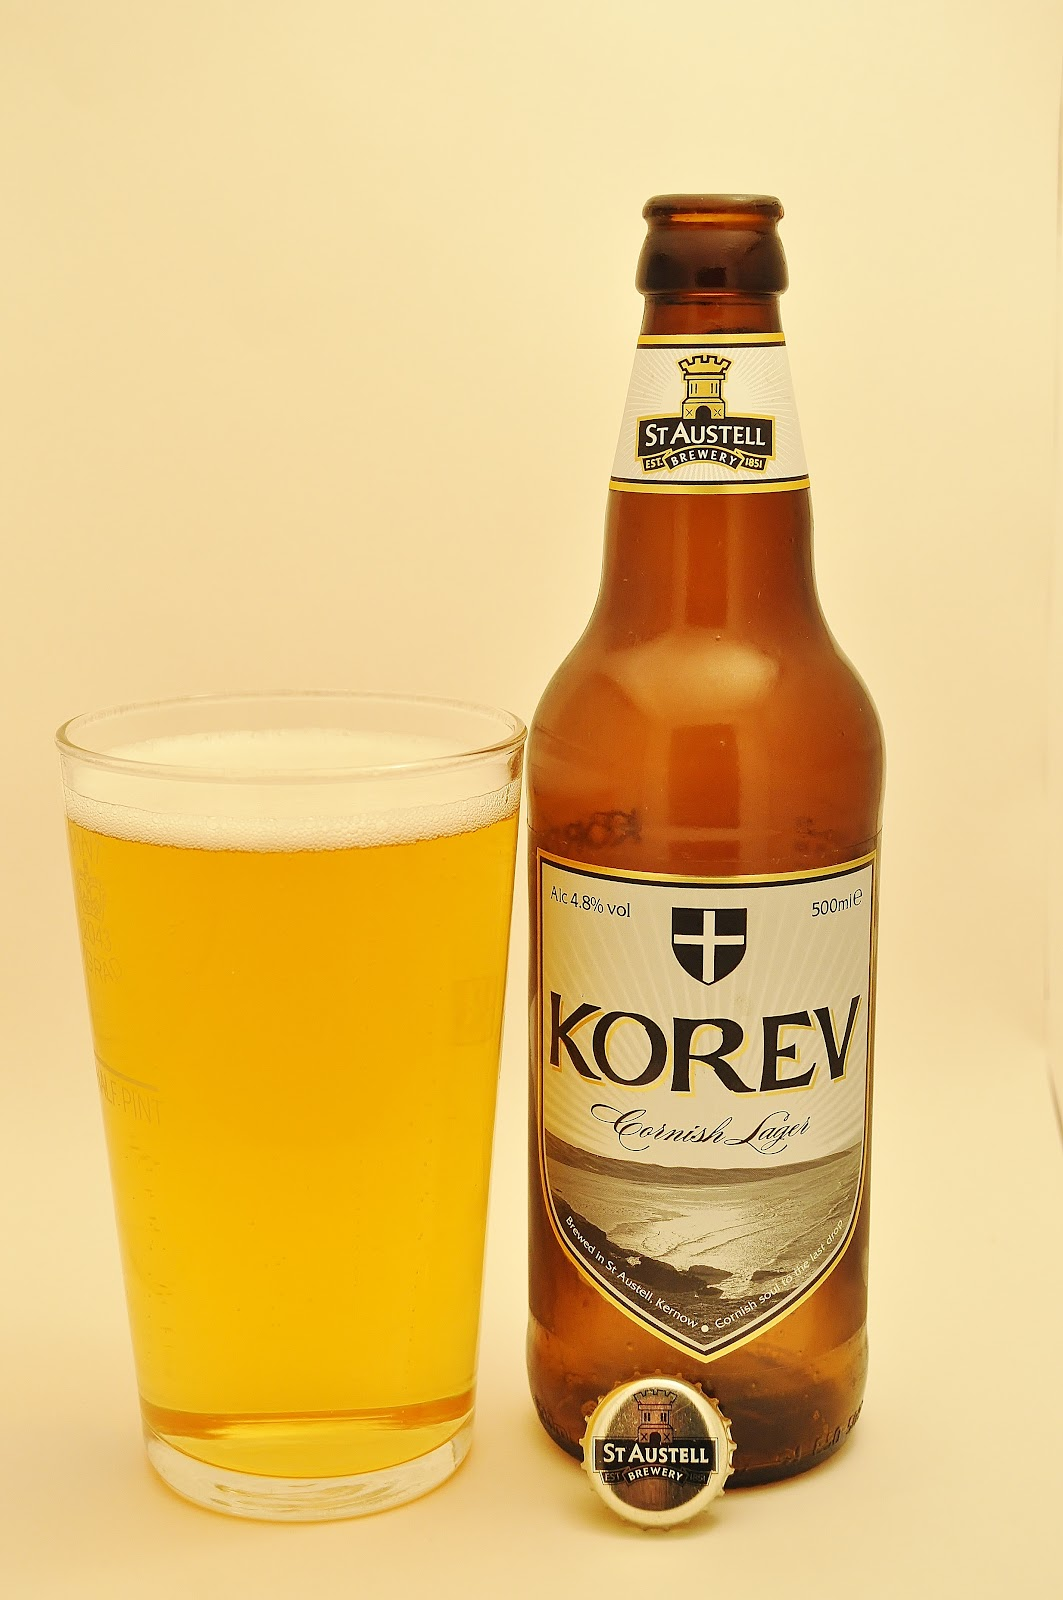 Blood, Stout and Tears.: St. Austell Korev Cornish Lager